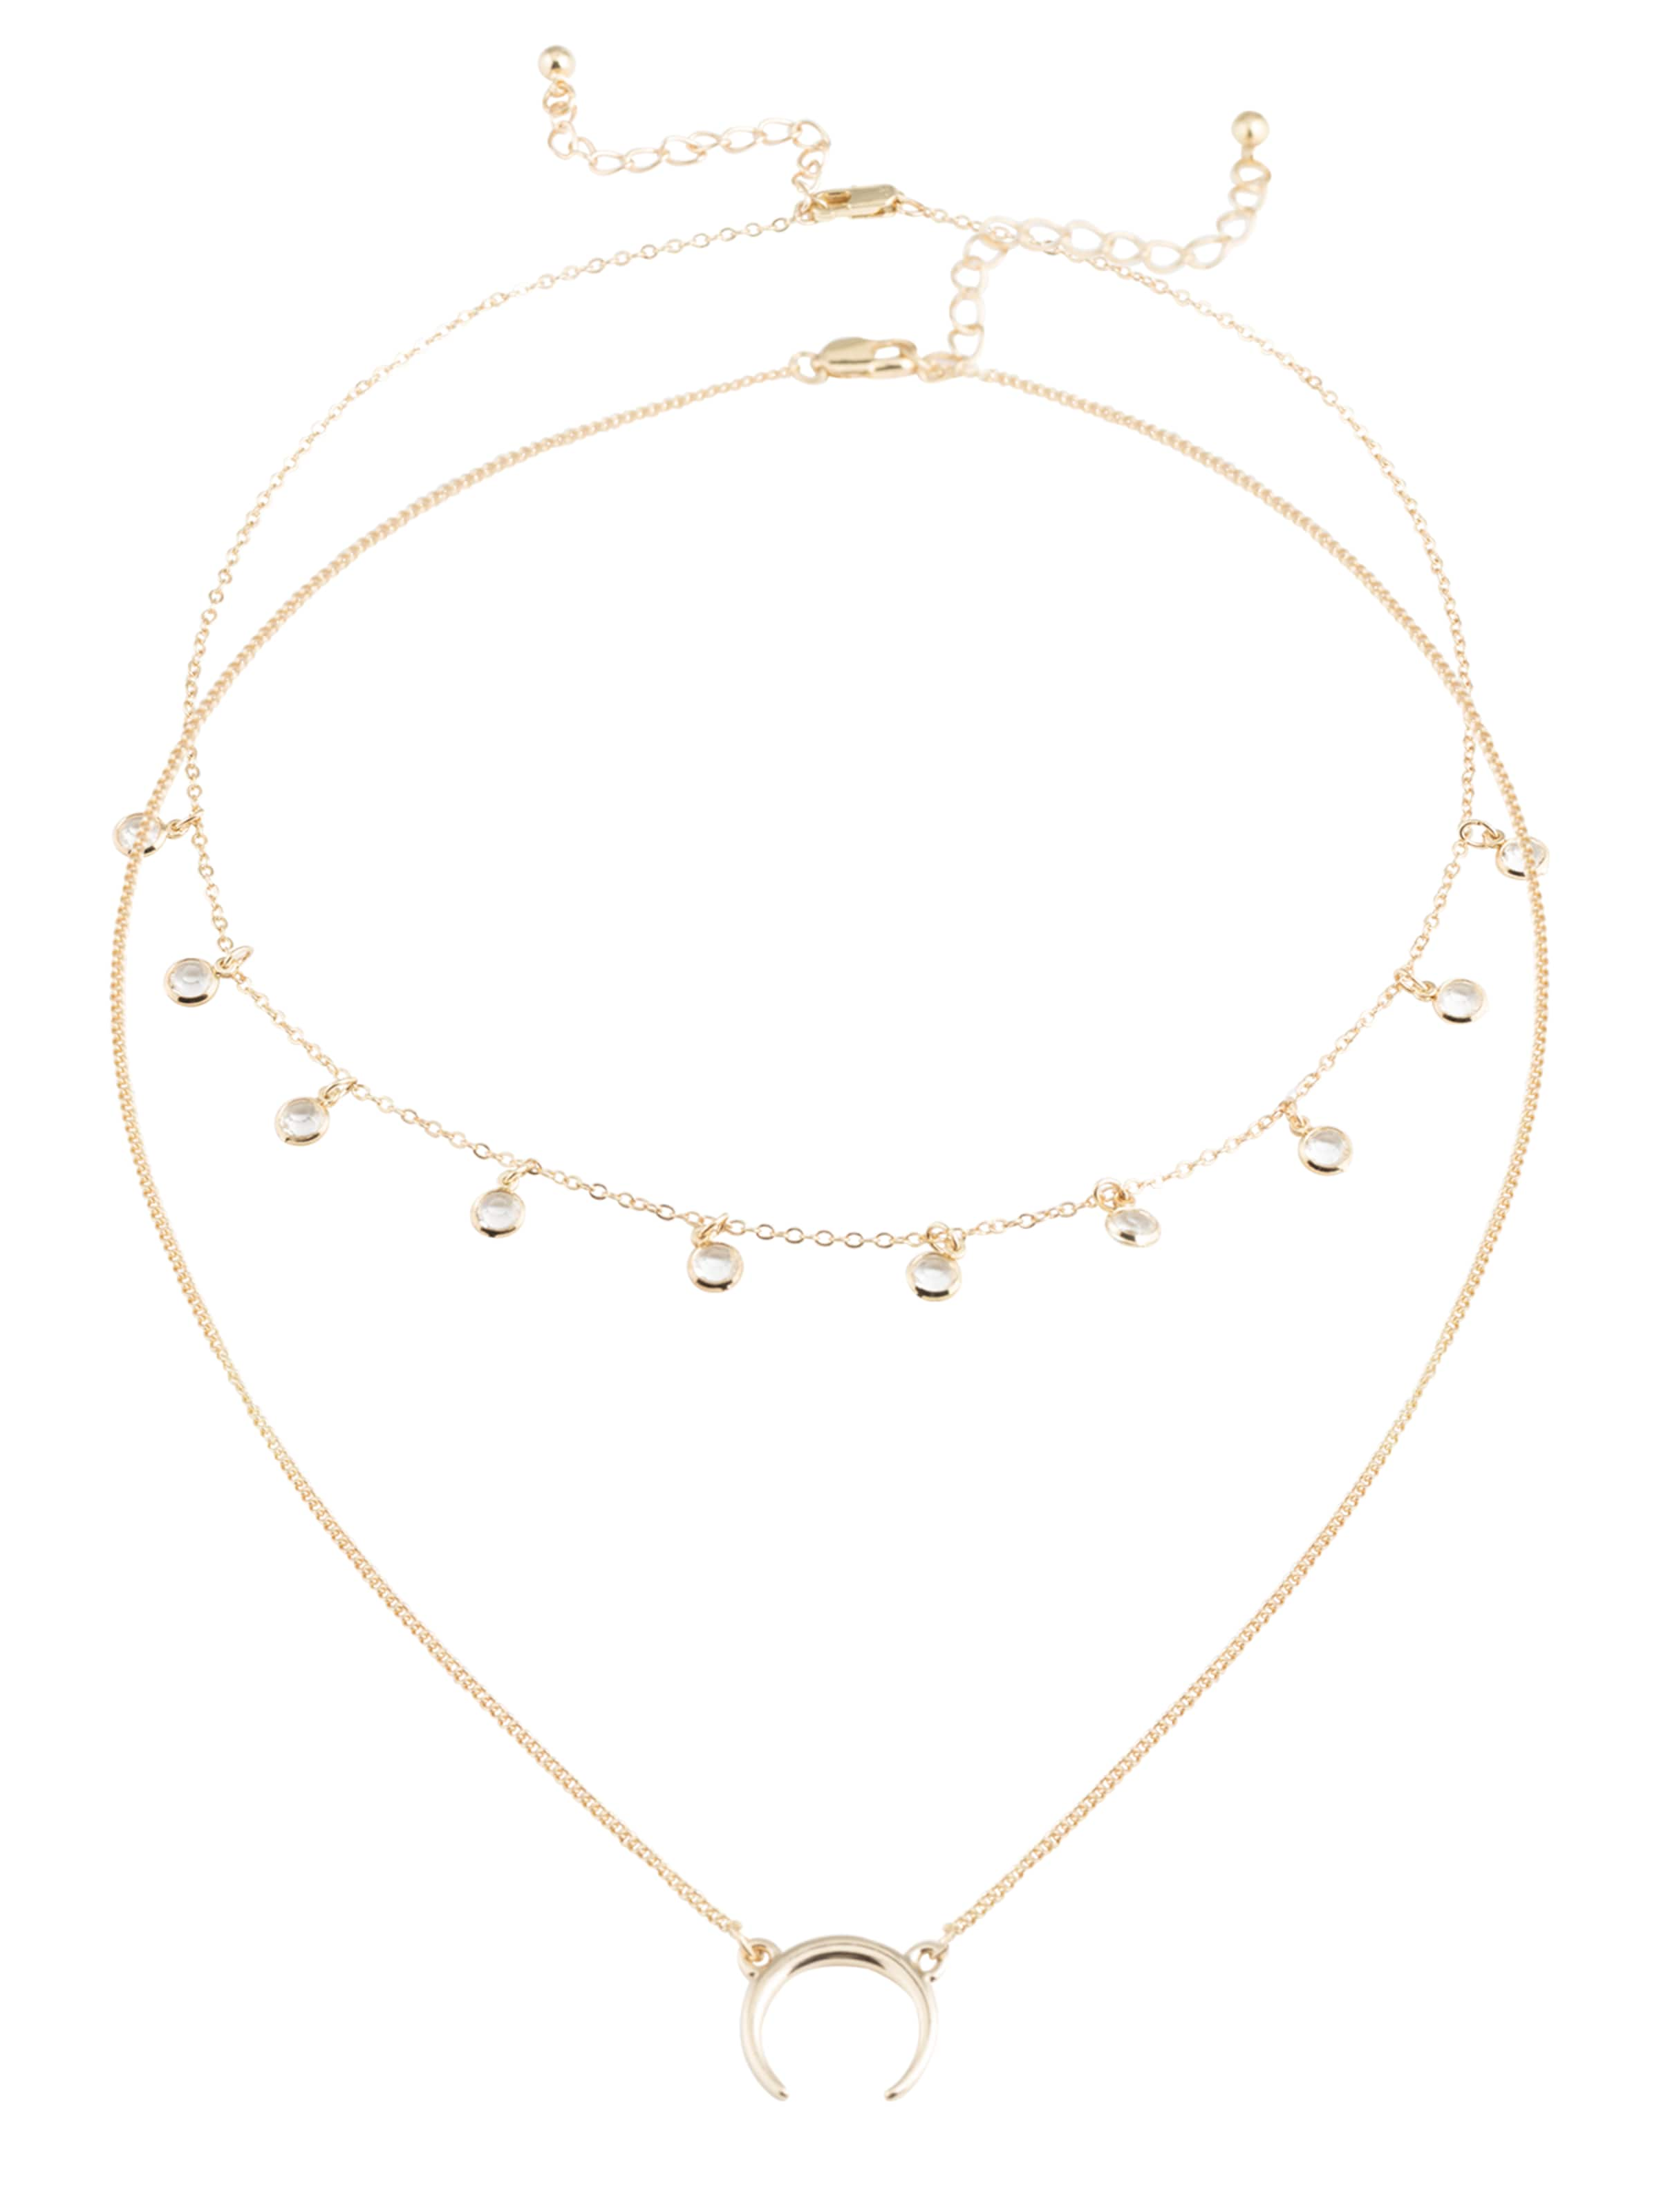 DamenSchmuck In 'necklace' 'necklace' In In Pieces Pieces Gold 'necklace' Pieces DamenSchmuck DamenSchmuck Gold Ygv6bfy7